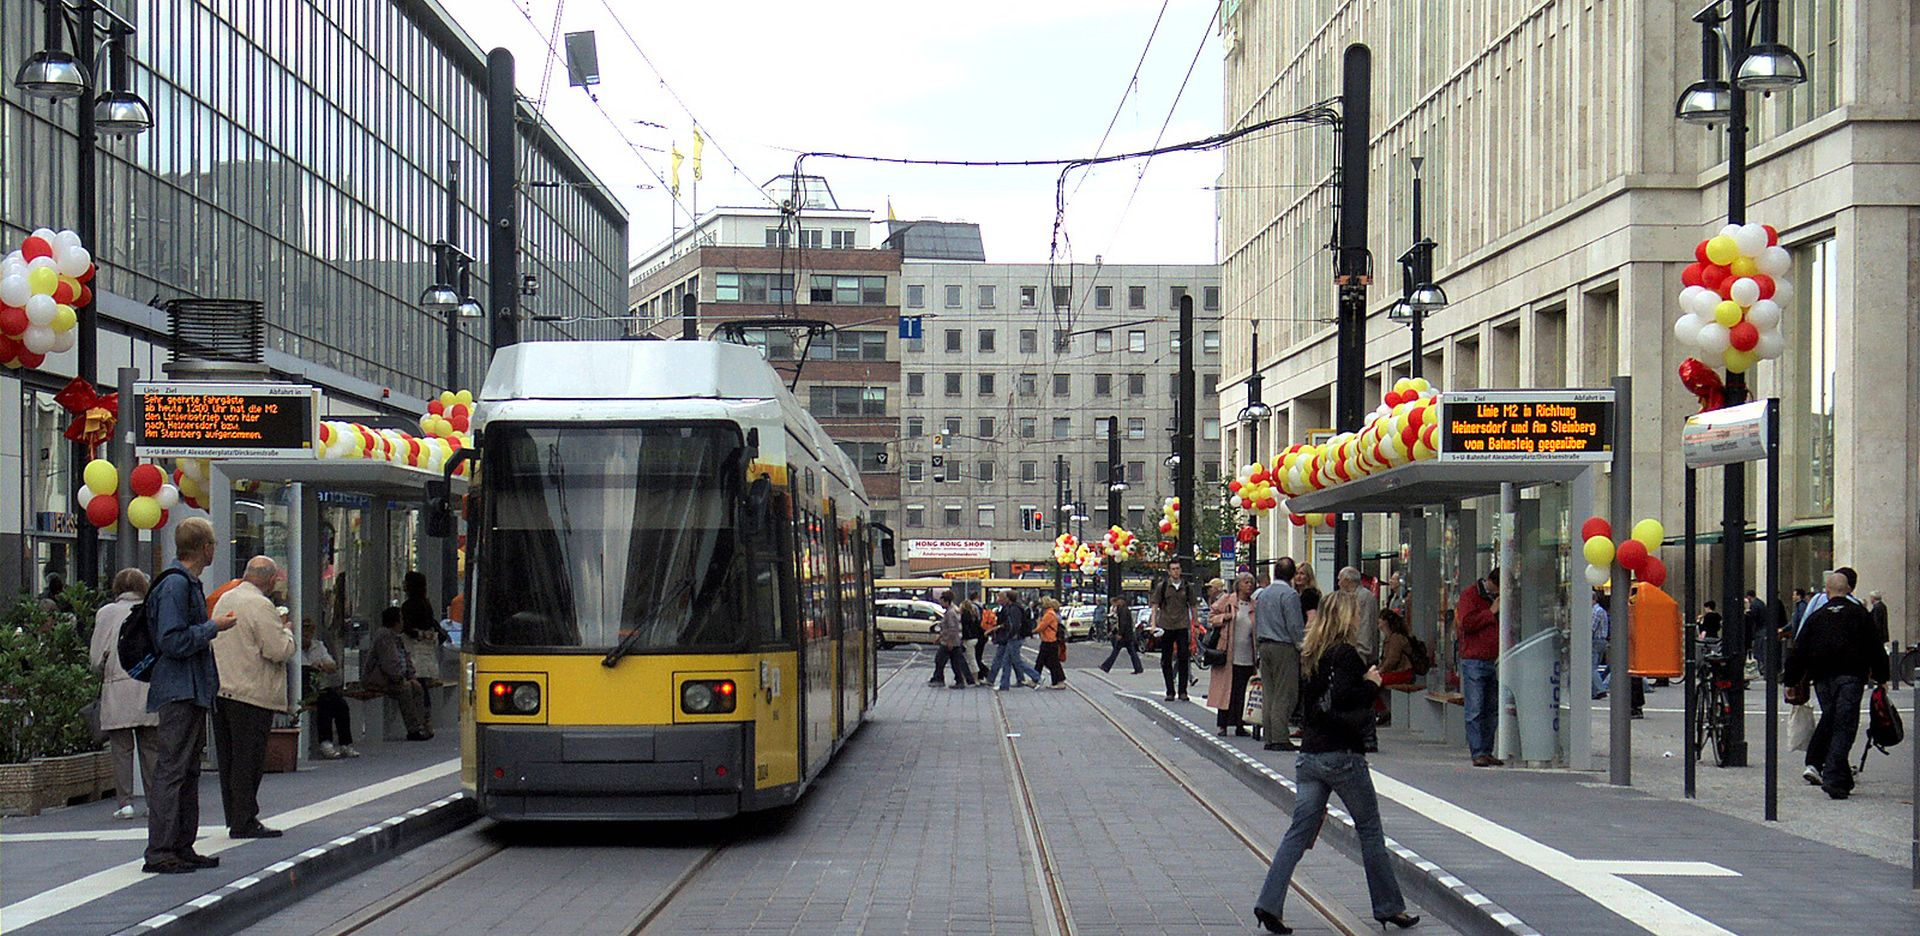 view of a tram with people crossing the street in Berlin, Alexanderplatz